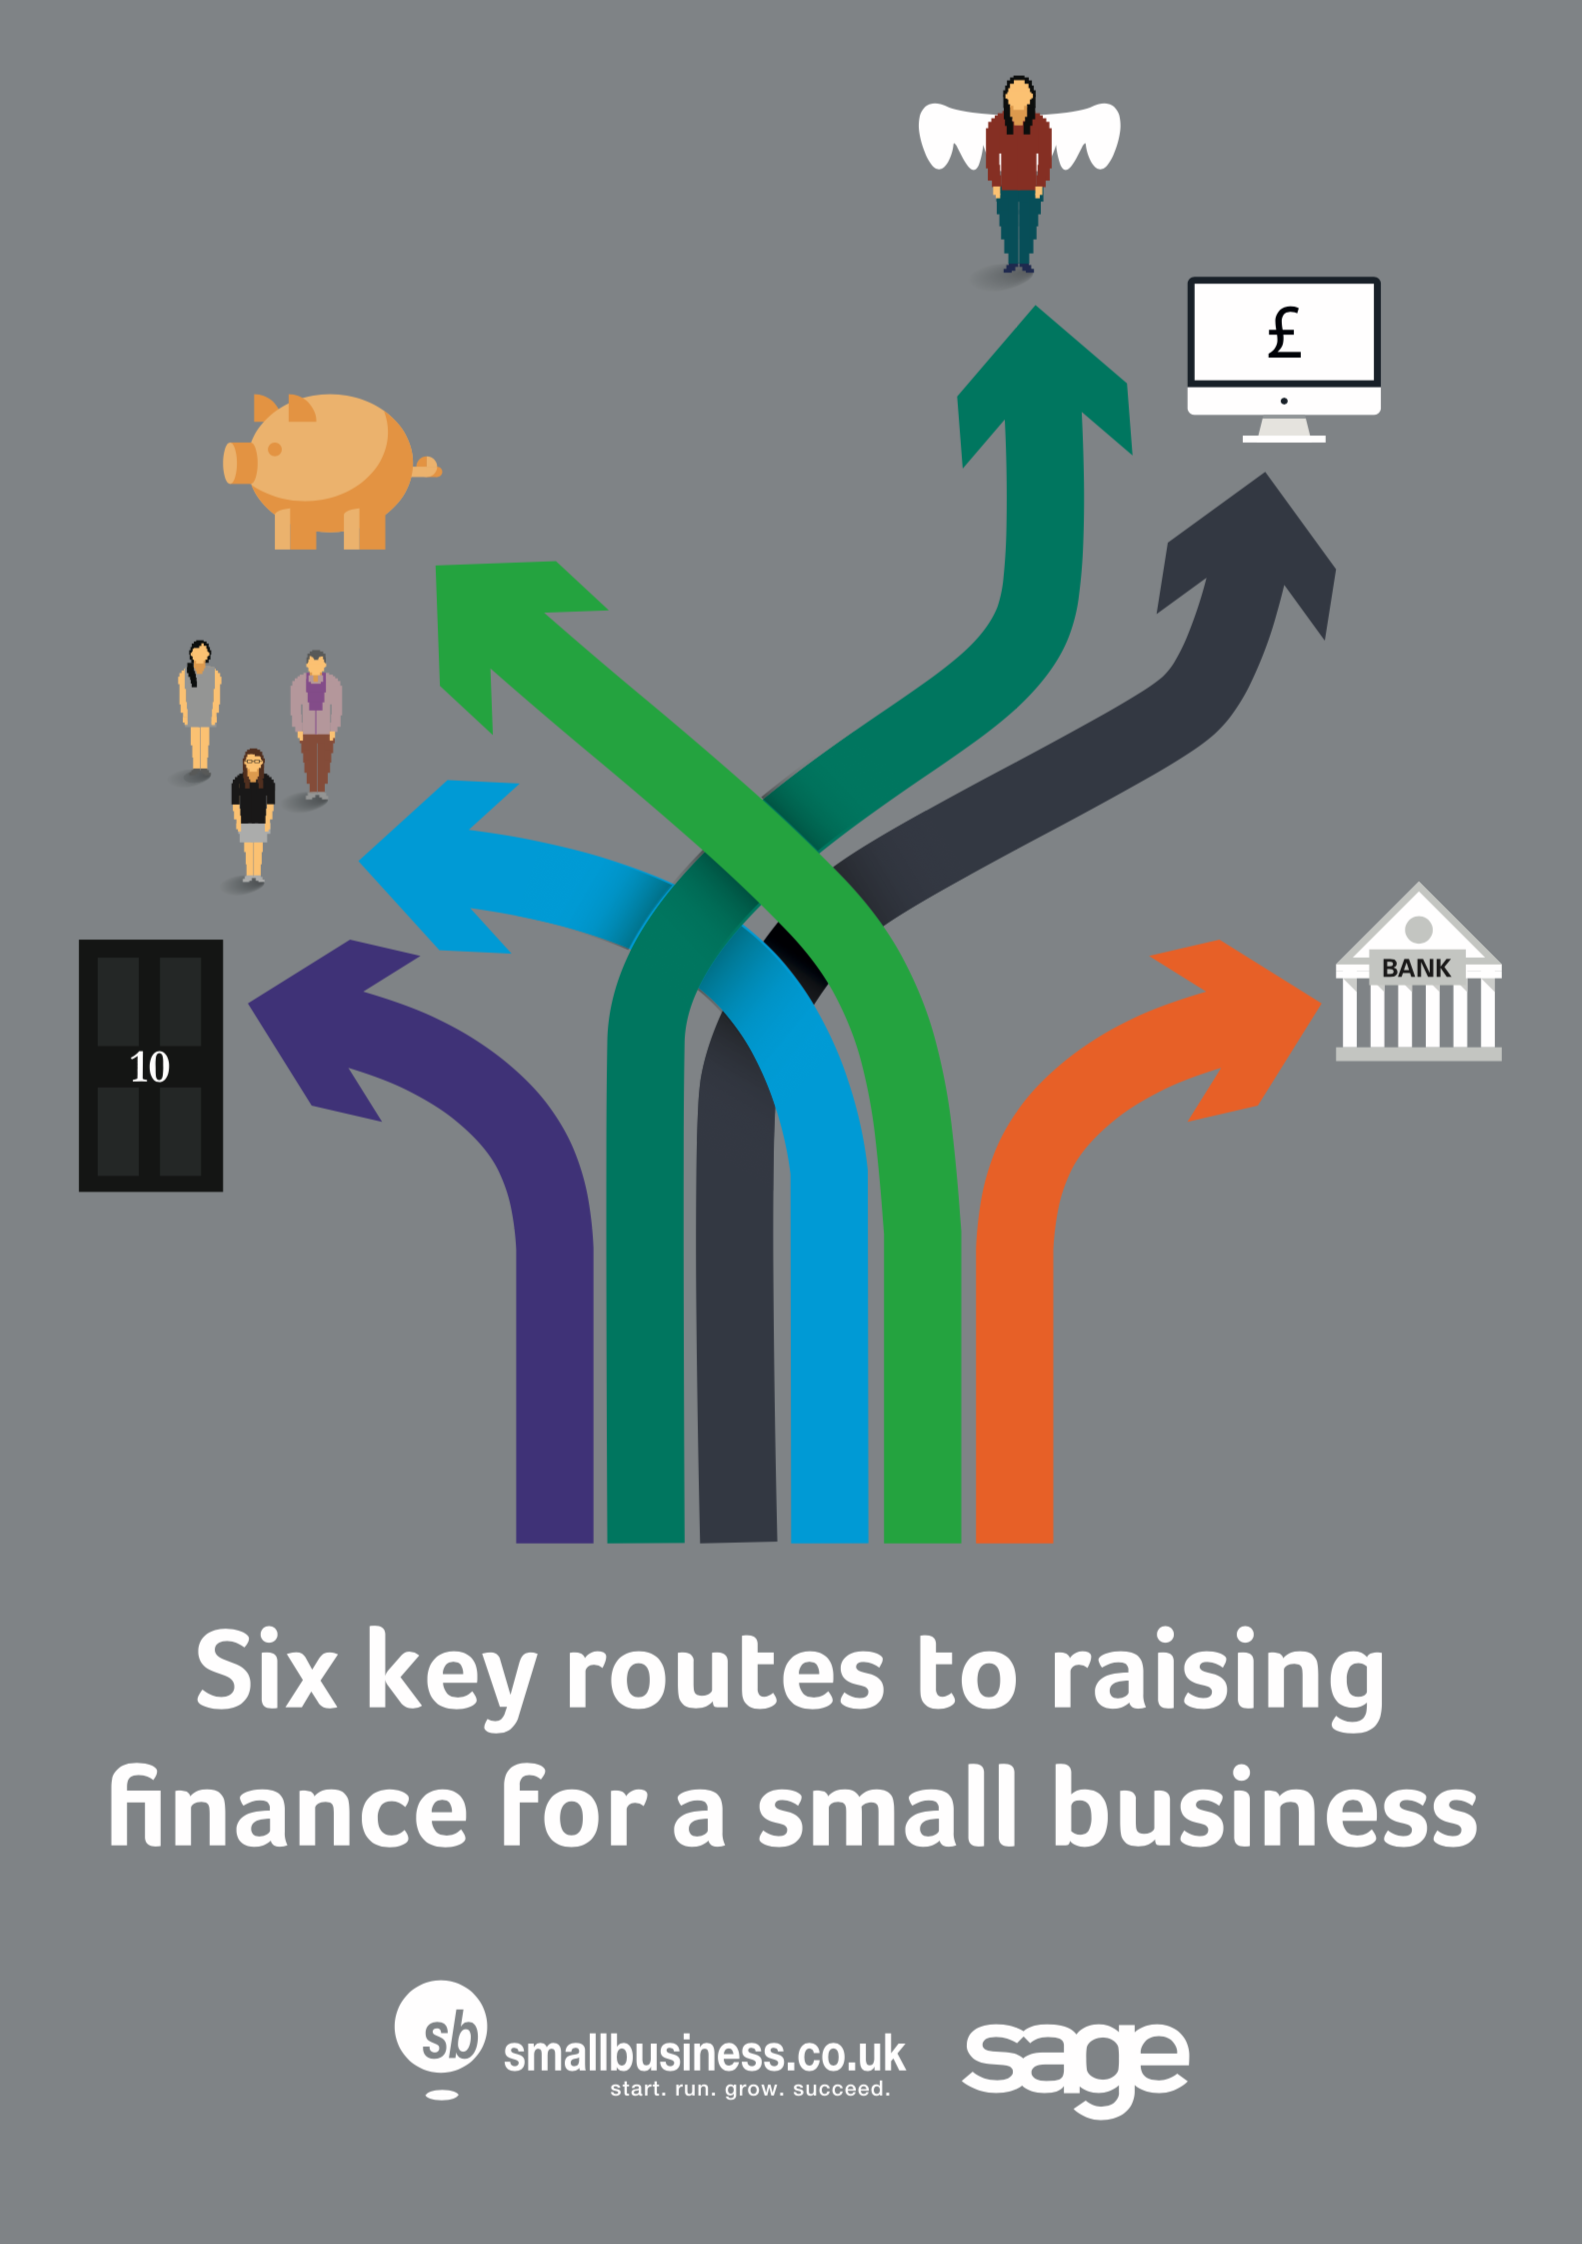 In recent times, entrepreneurs have seen a wealth of new finance options  emerge to help get their business up and running.